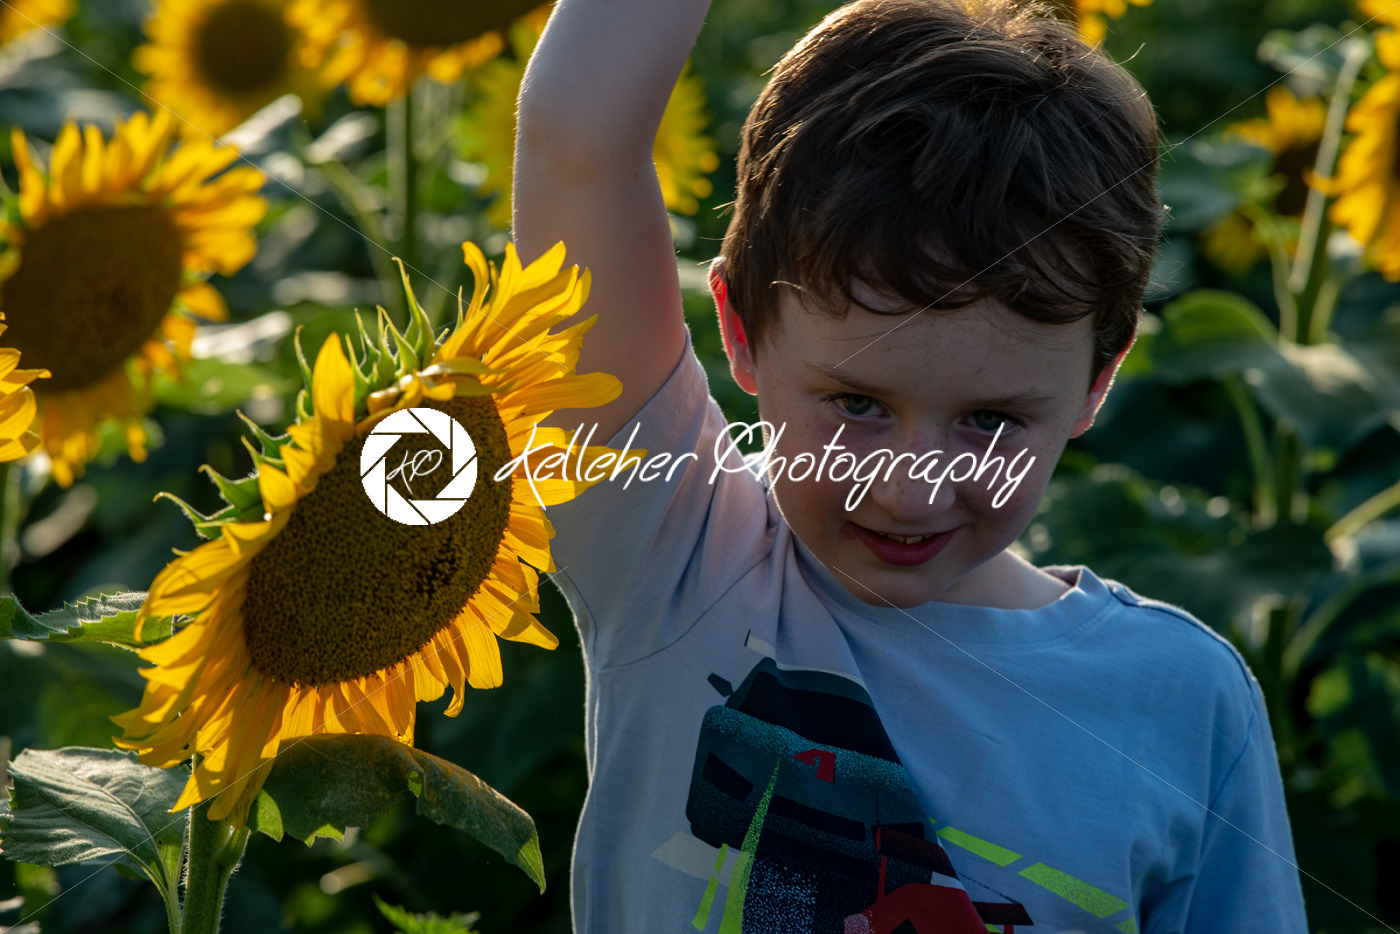 Beauty joyful young boy with sunflower enjoying nature and laughing on summer sunflower field. Sunflare, sunbeams, glow sun. Backlit. - Kelleher Photography Store